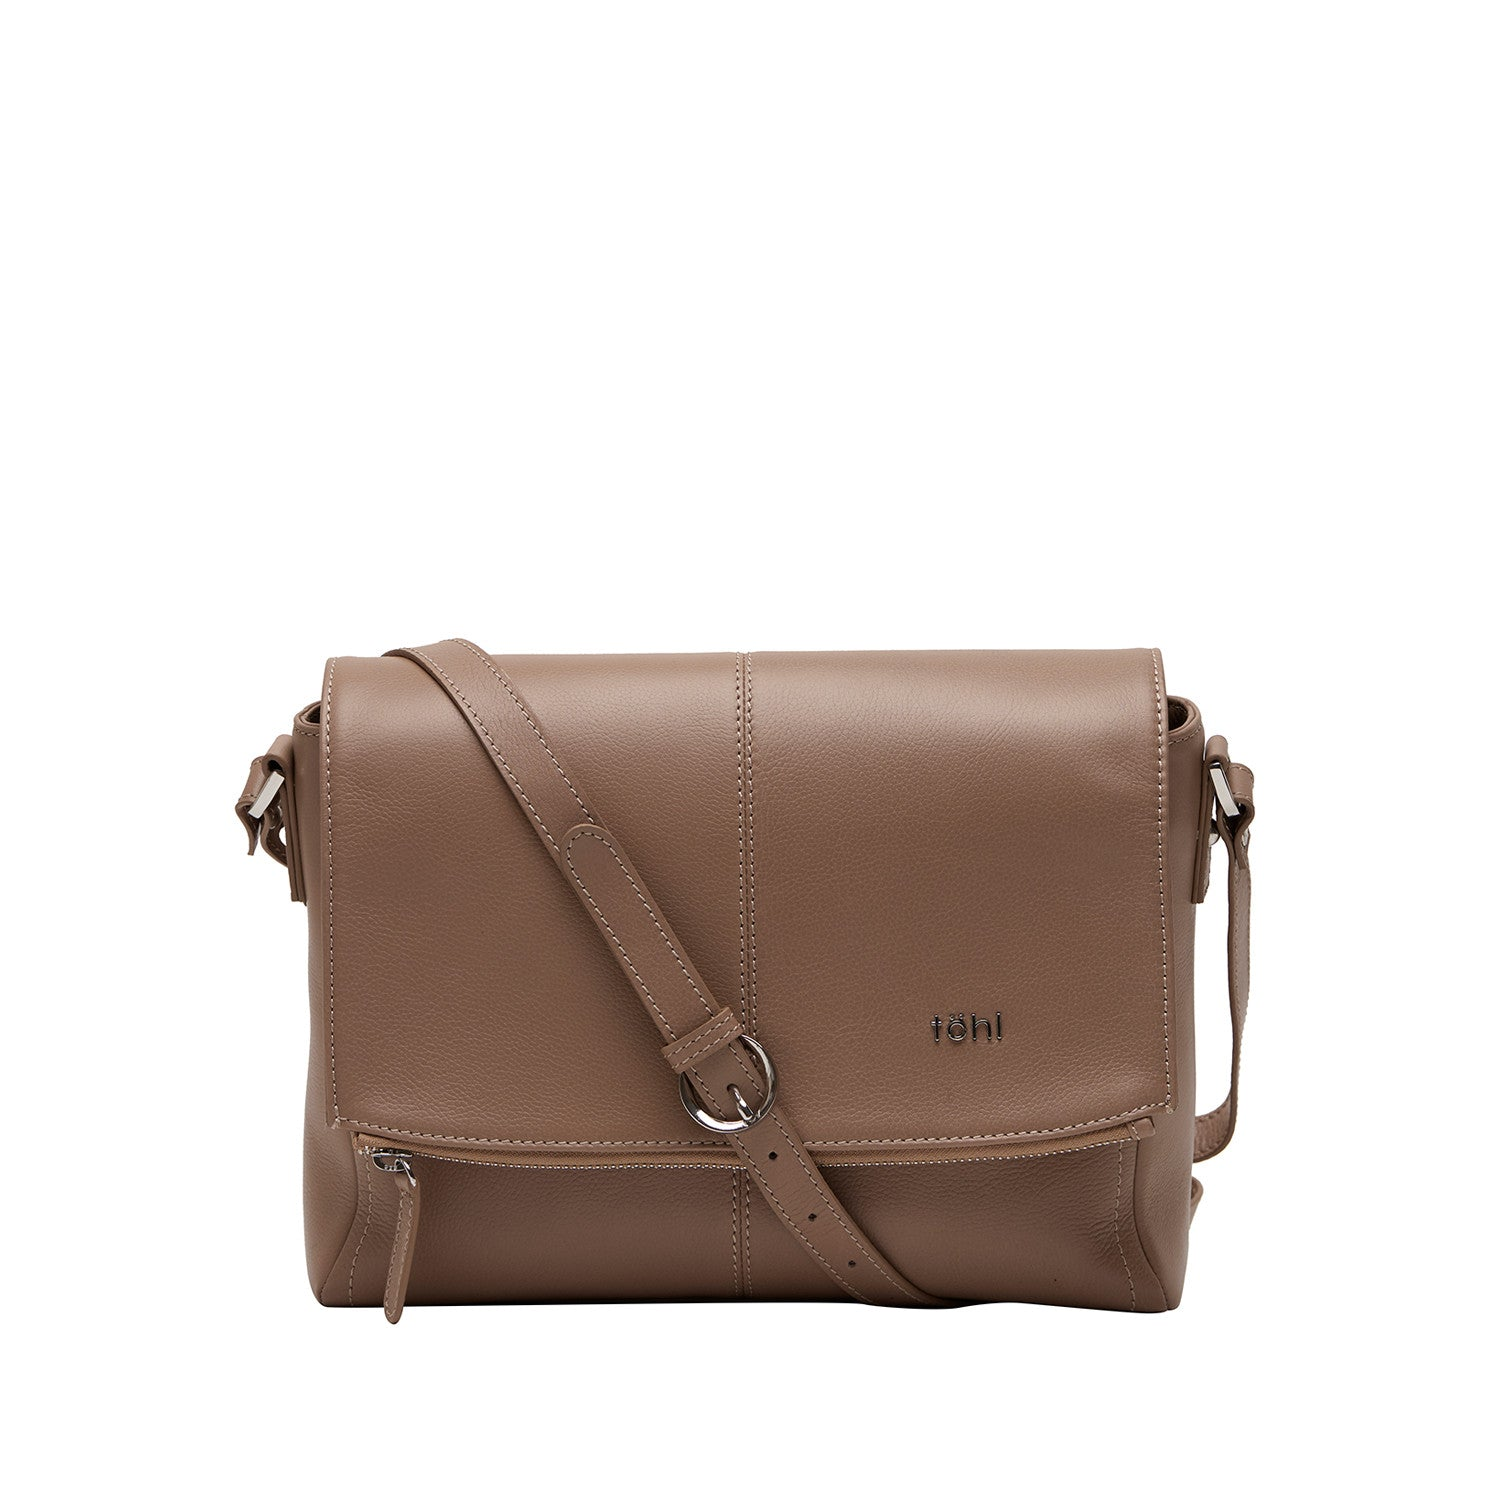 9253861fb92 ... lower price with 5bde5 cfd80 SG 0002 - TOHL MONROE WOMENS SLING BAG -  NUDE ...